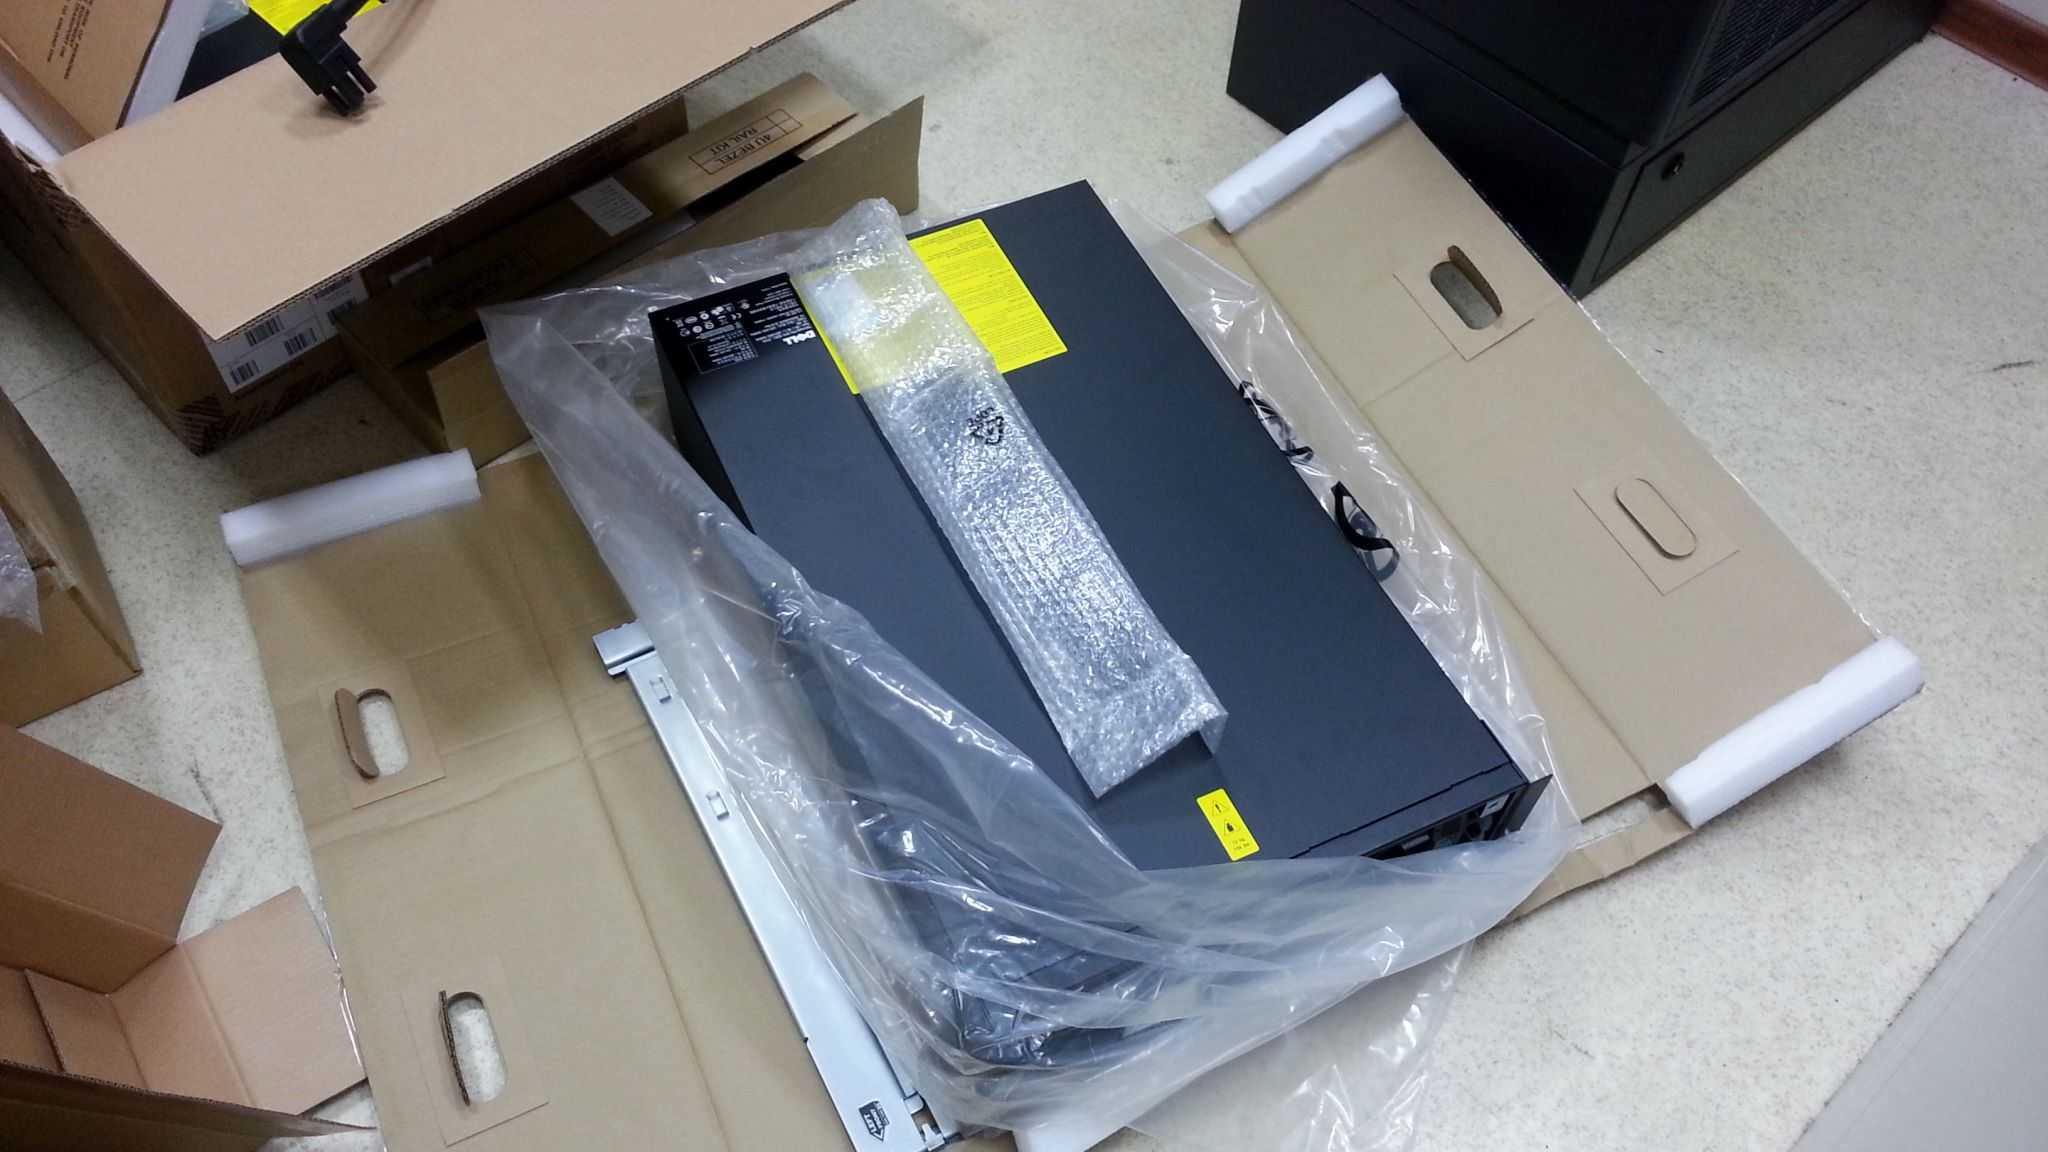 Dell Rack UPS 5600W unboxing